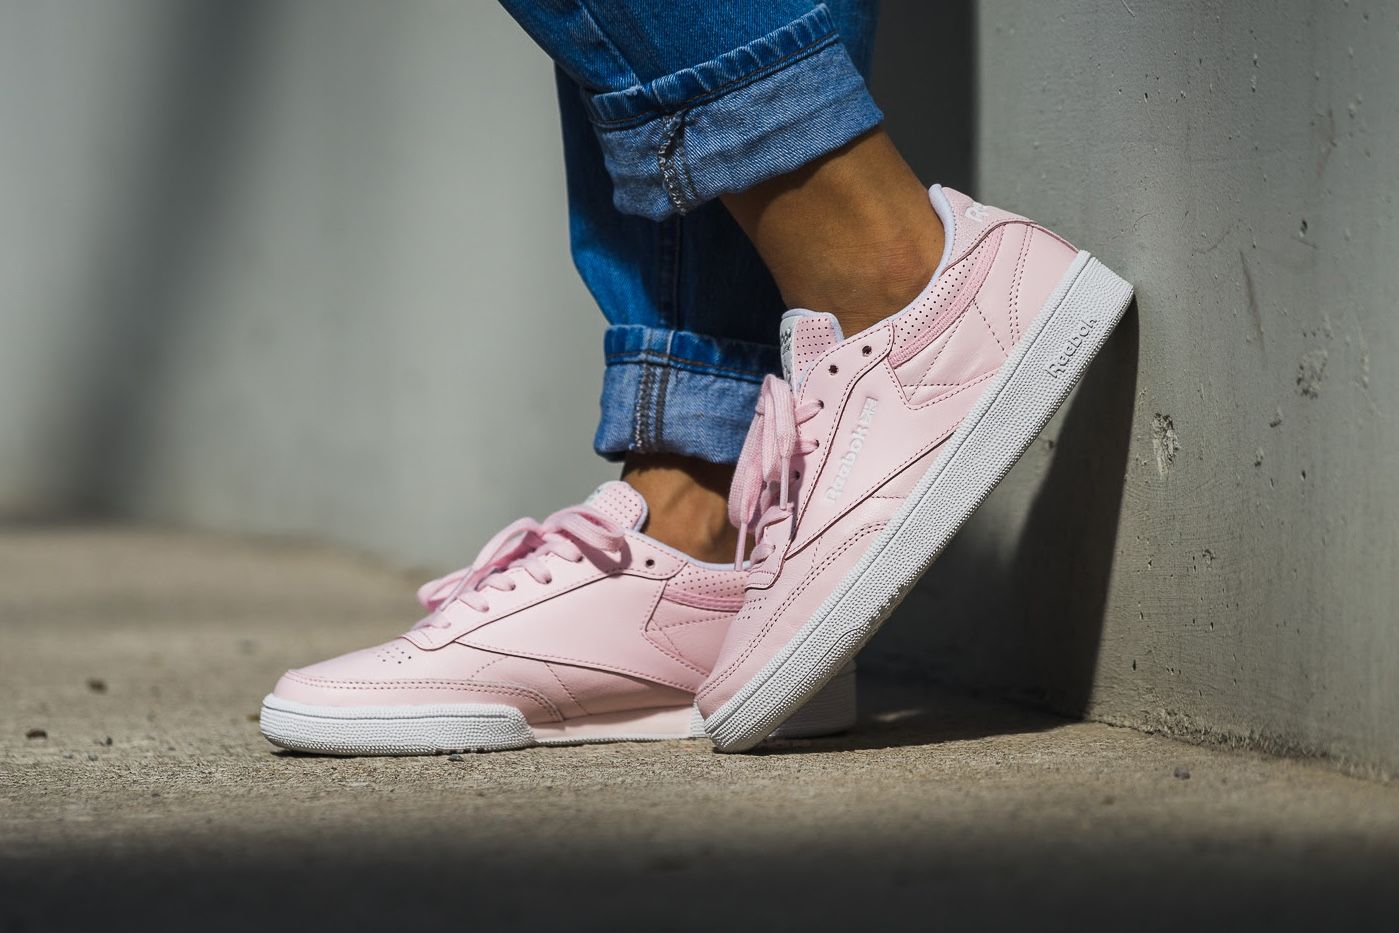 This Reebok Club C 85 FBT Is Pink-and-White Minimalism Done Right